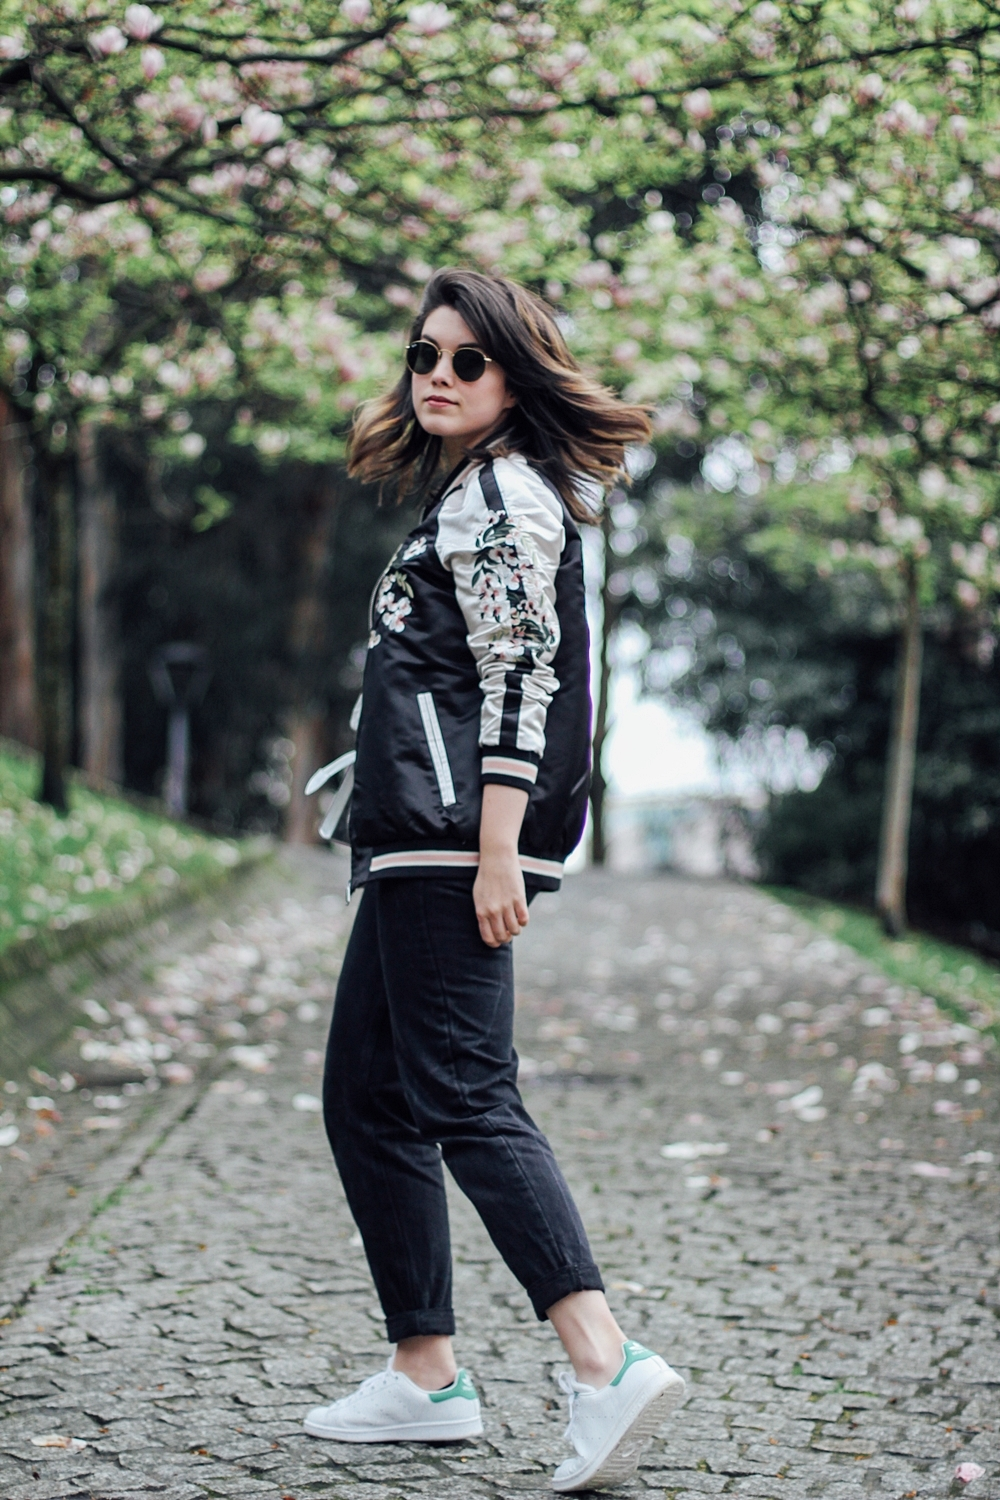 Reversible bomber jacket with embroidery detail streetstyle how to wear